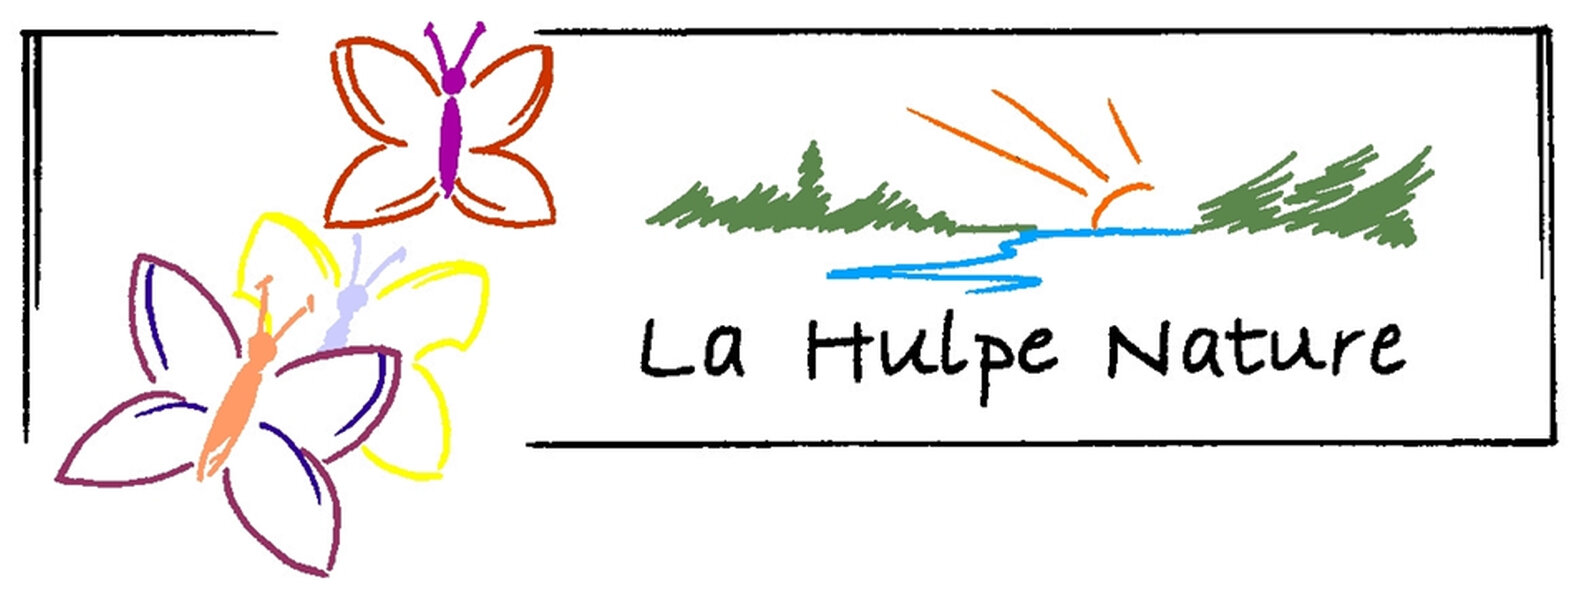 www.lahulpenature.be devient www.lahulpenature.com